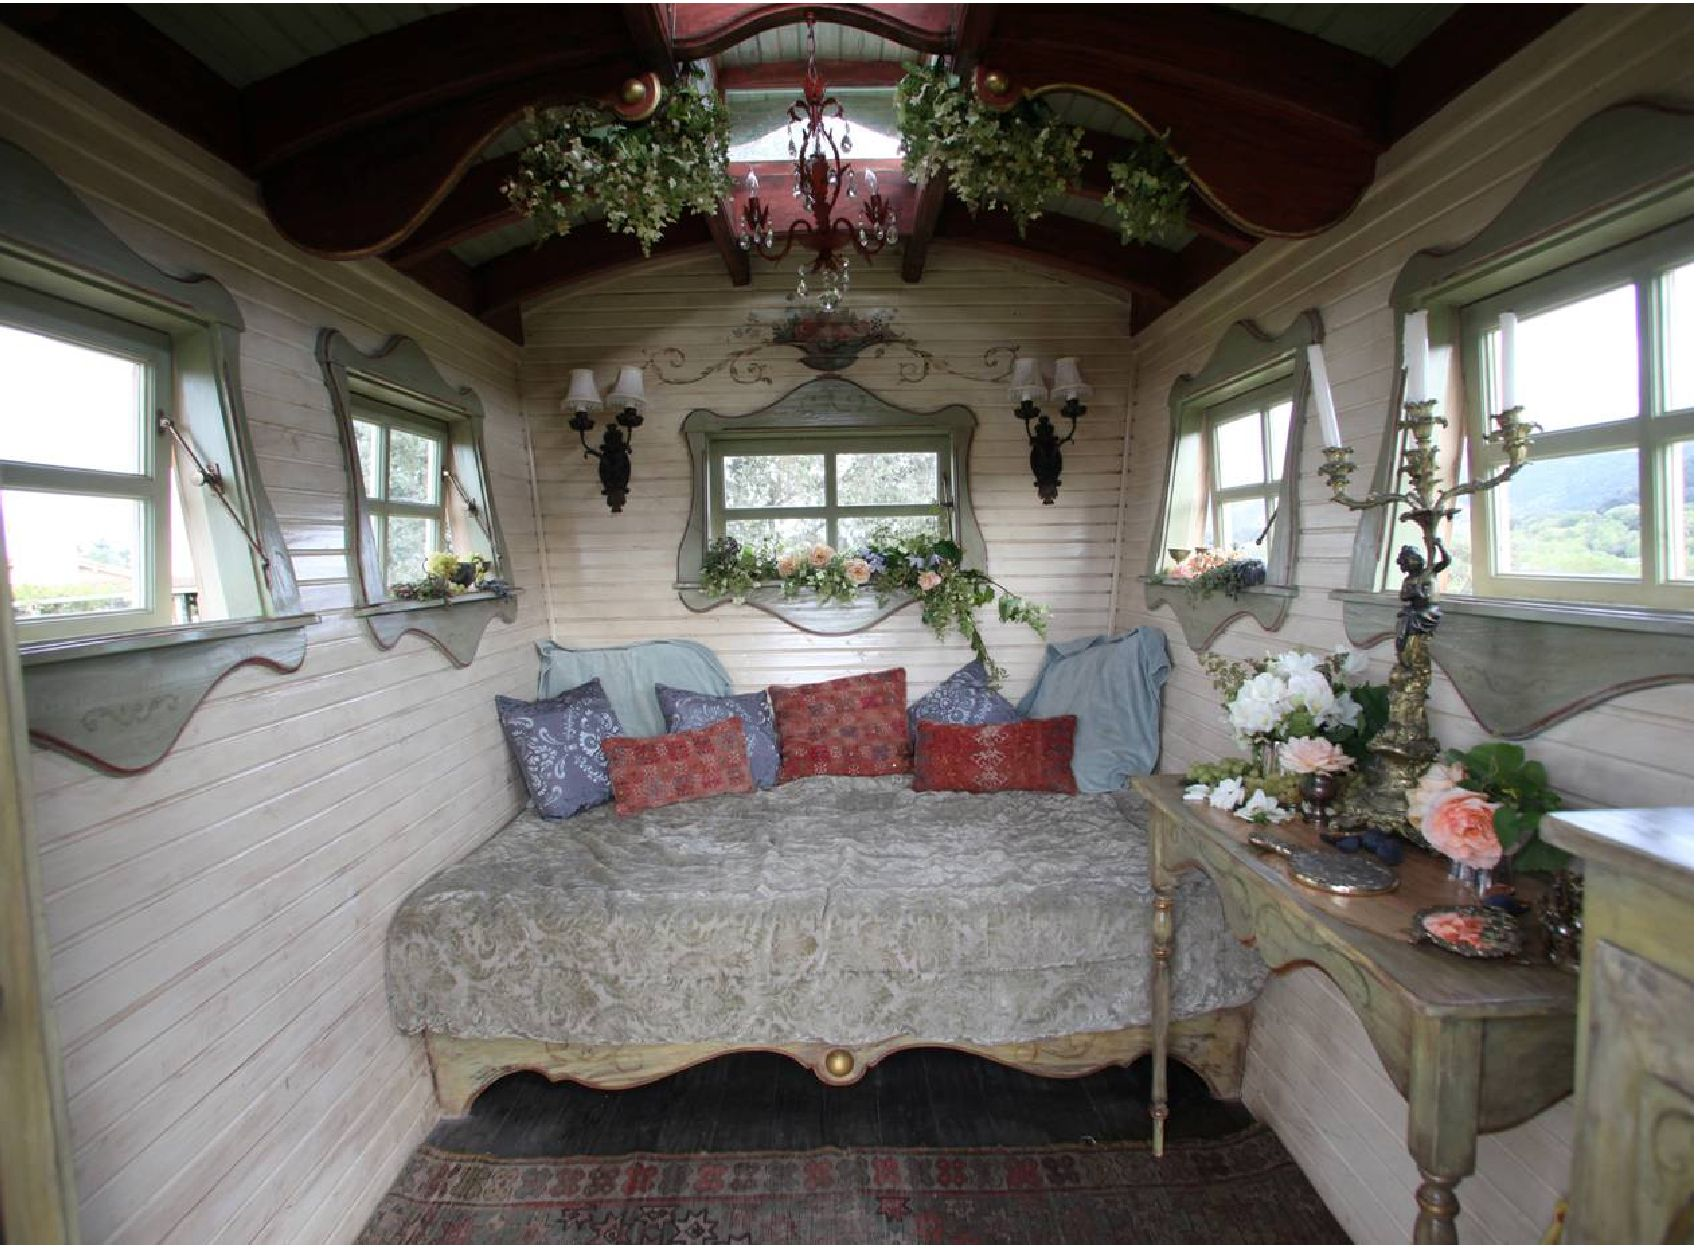 Gypsy caravan interior photo getting ready for the cec s gypsy caravan green gala adesso Diy caravan interior design ideas